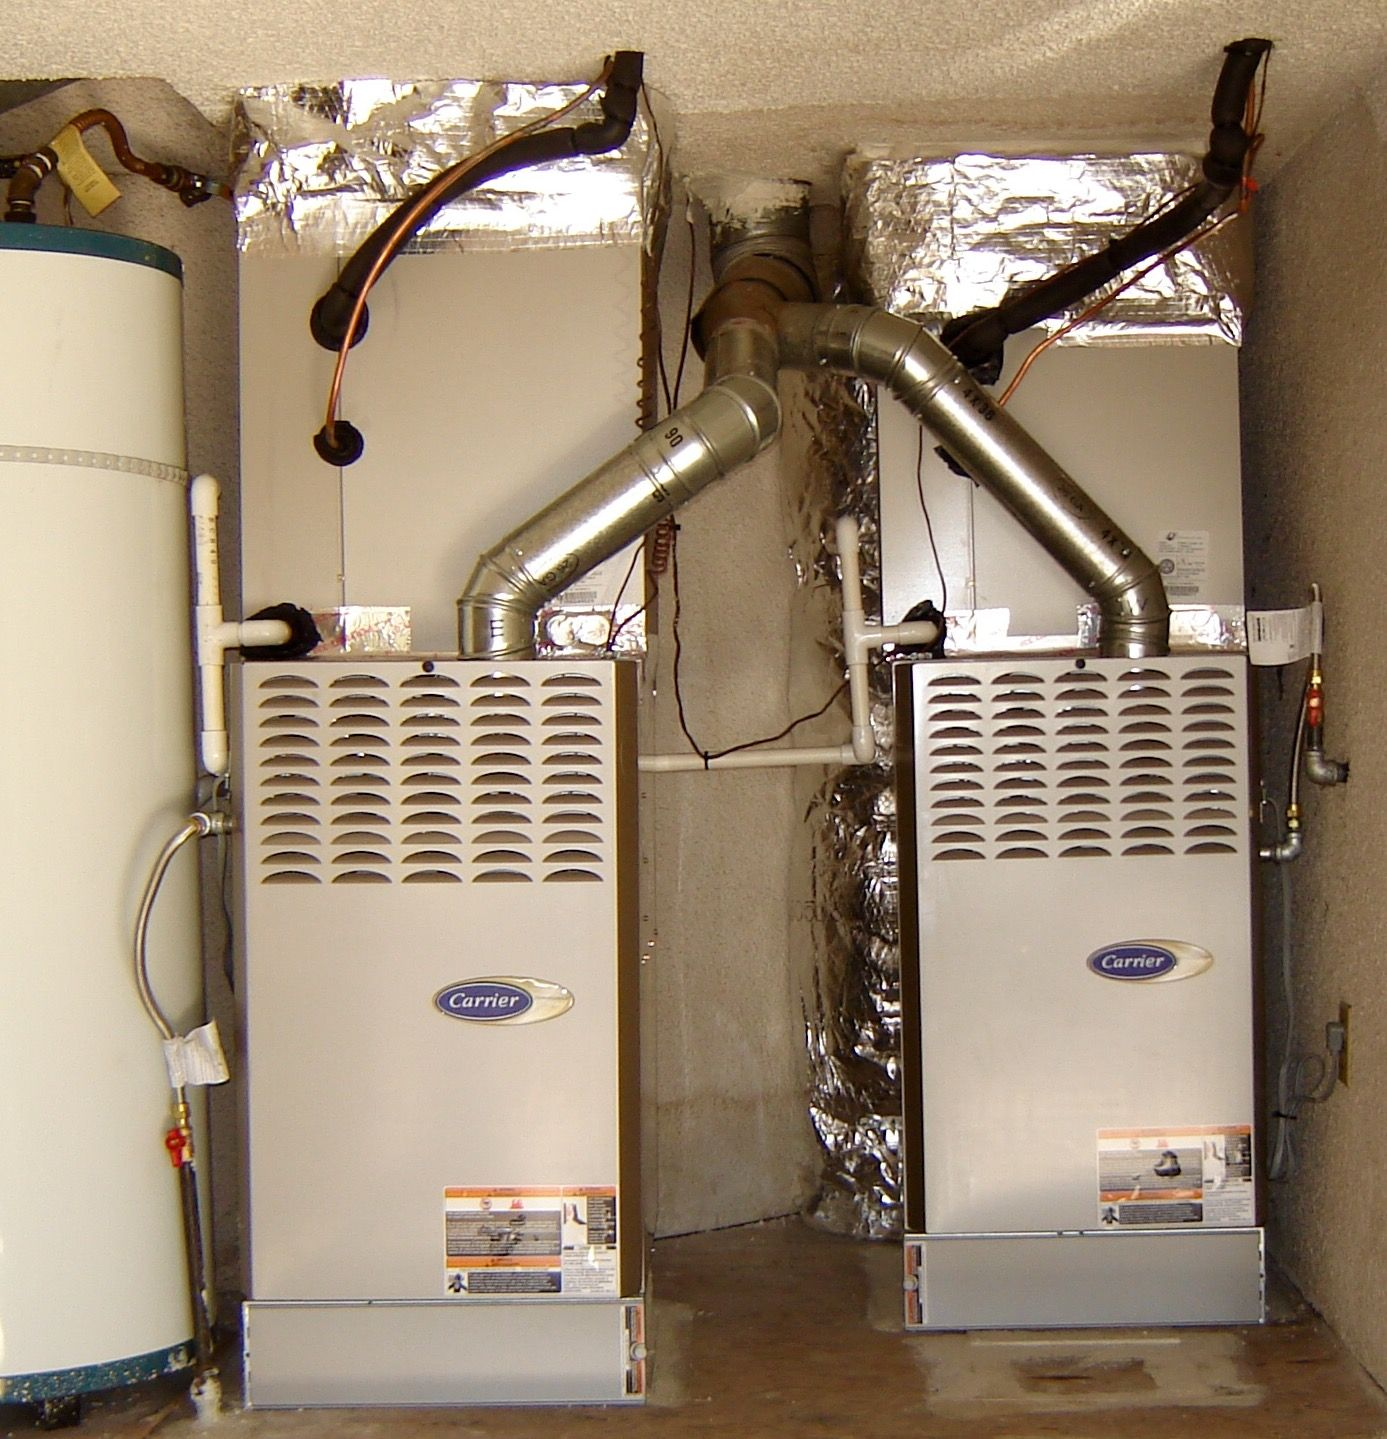 Carrier CTX Furnaces, dual system installation in garage